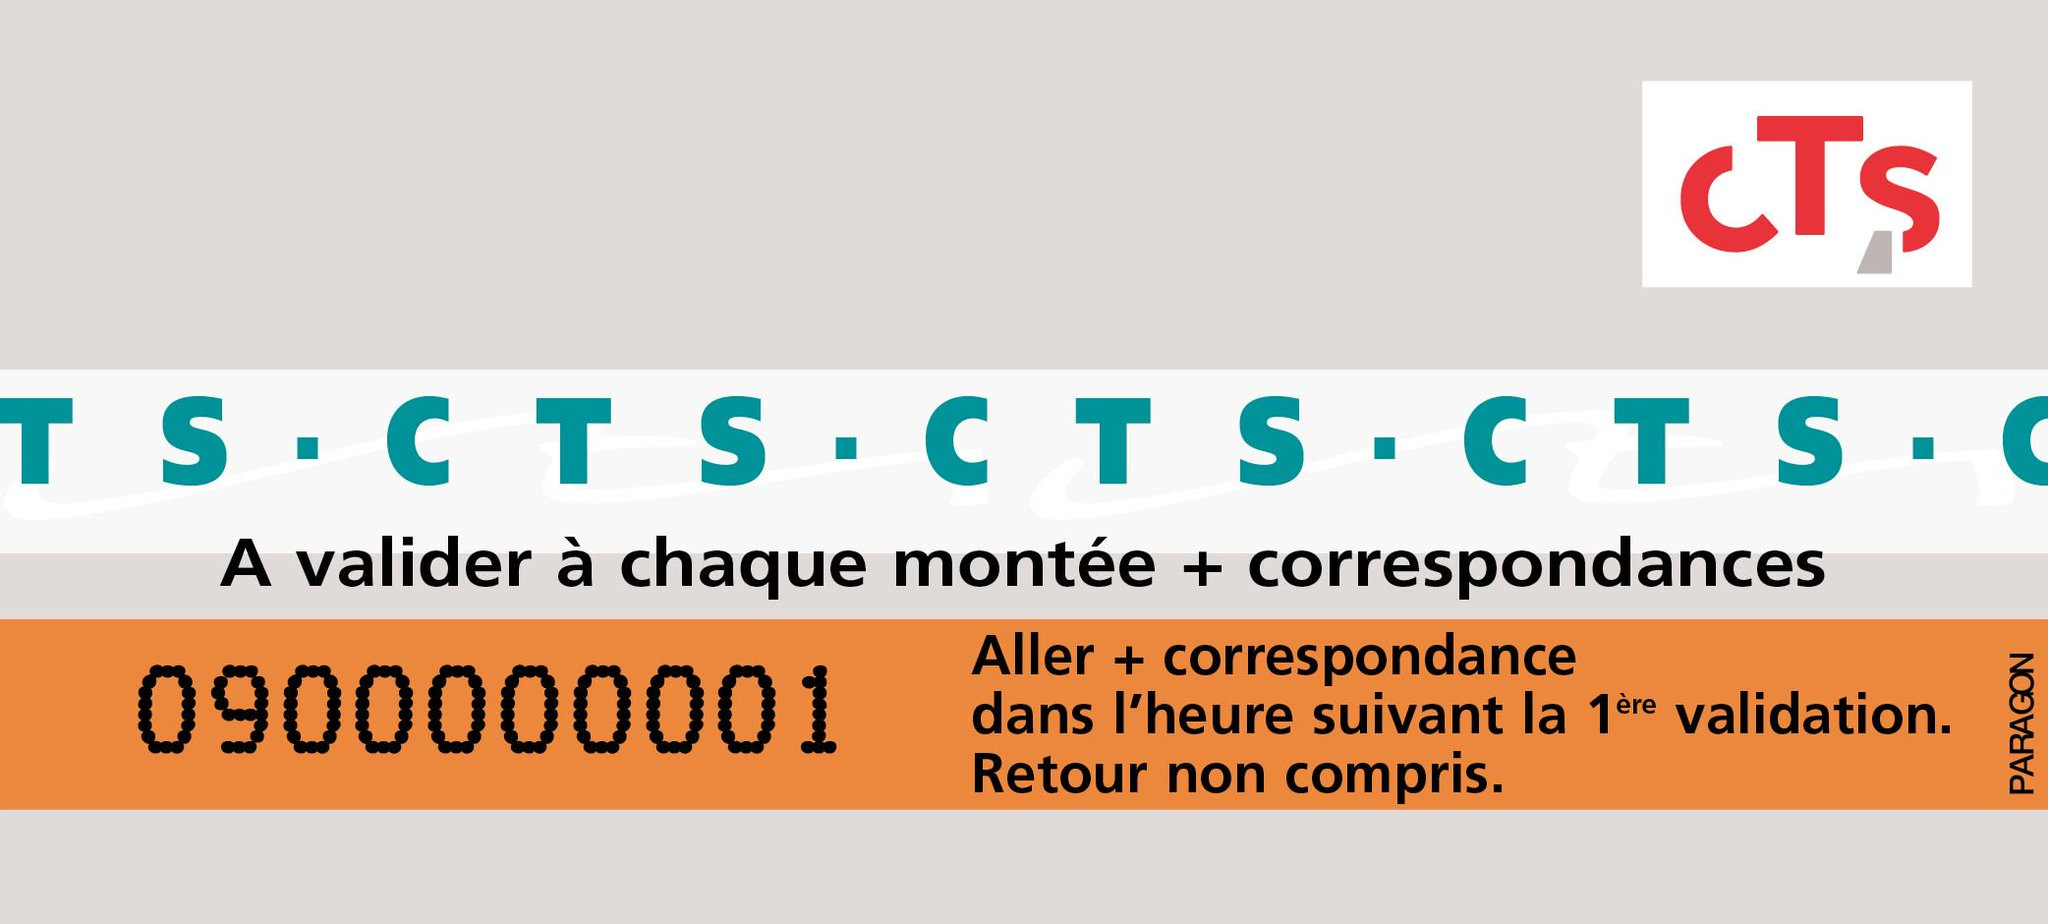 Agence Cts Strasbourg Cts Strasbourg On Twitter